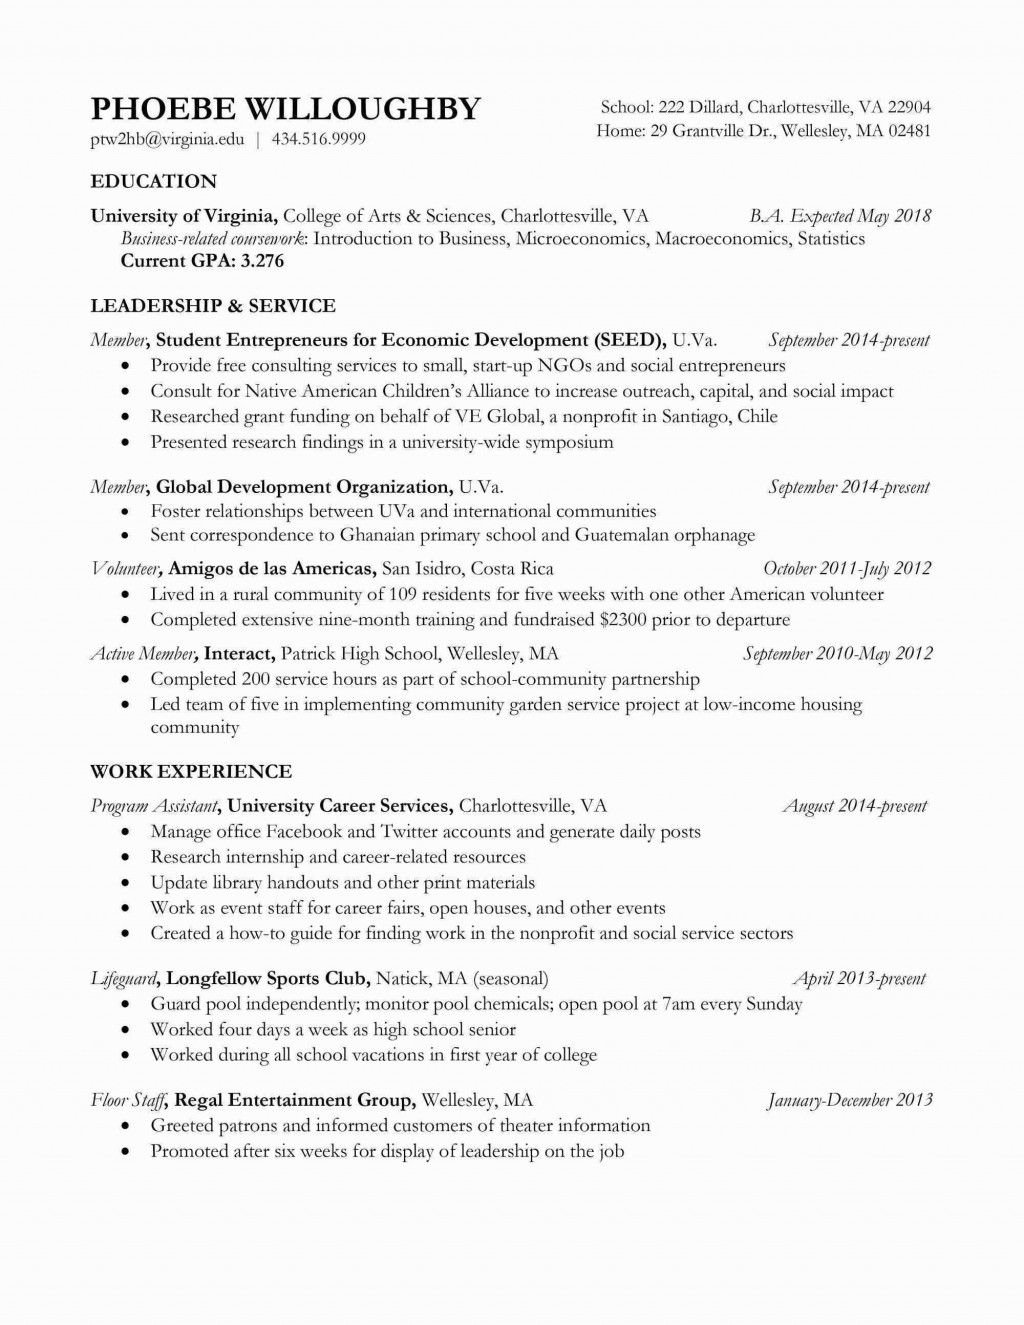 015 Introduction Sample Forsearch Paper Unique Business Development Letter Awesome Cover Of Questionnaire For Research Associate Position Large